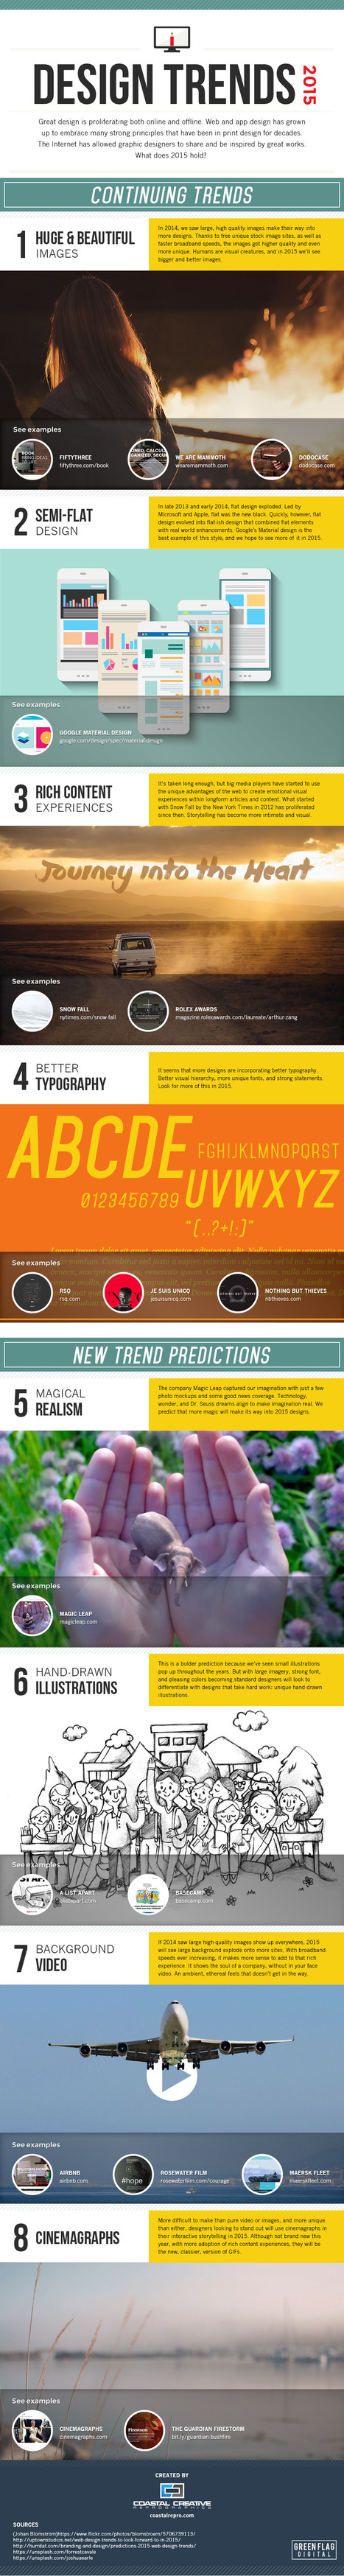 8 Design Trends for 2015 #infographic   Marketing Savvy   Scoop.it